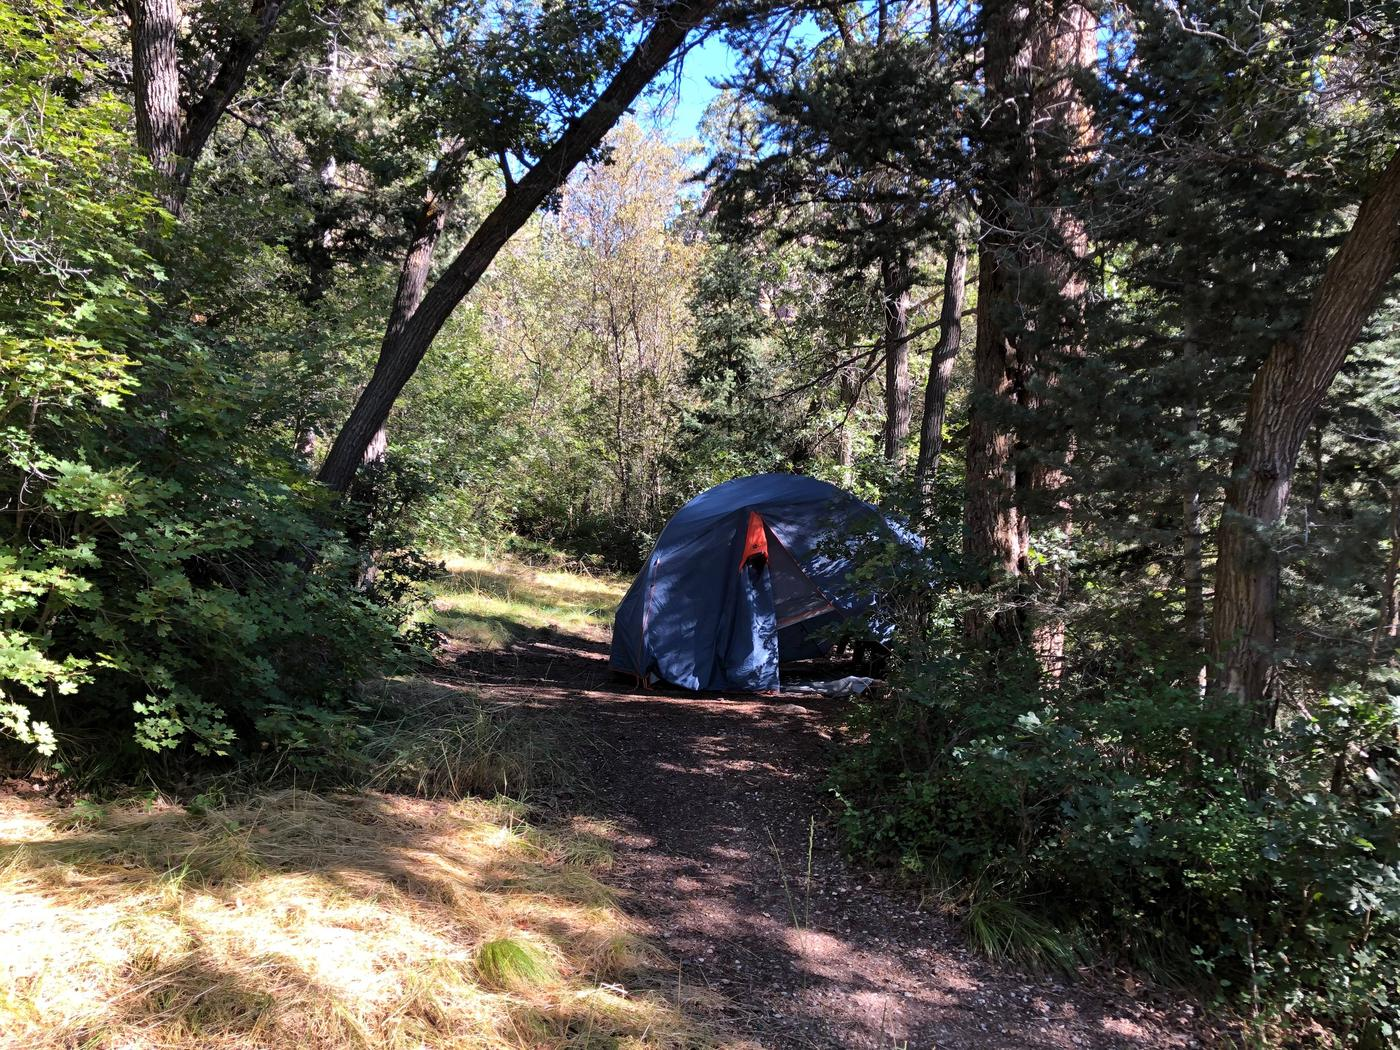 Maple Canyon Campground  - Site 6Maple Canyon Campground - Site 6